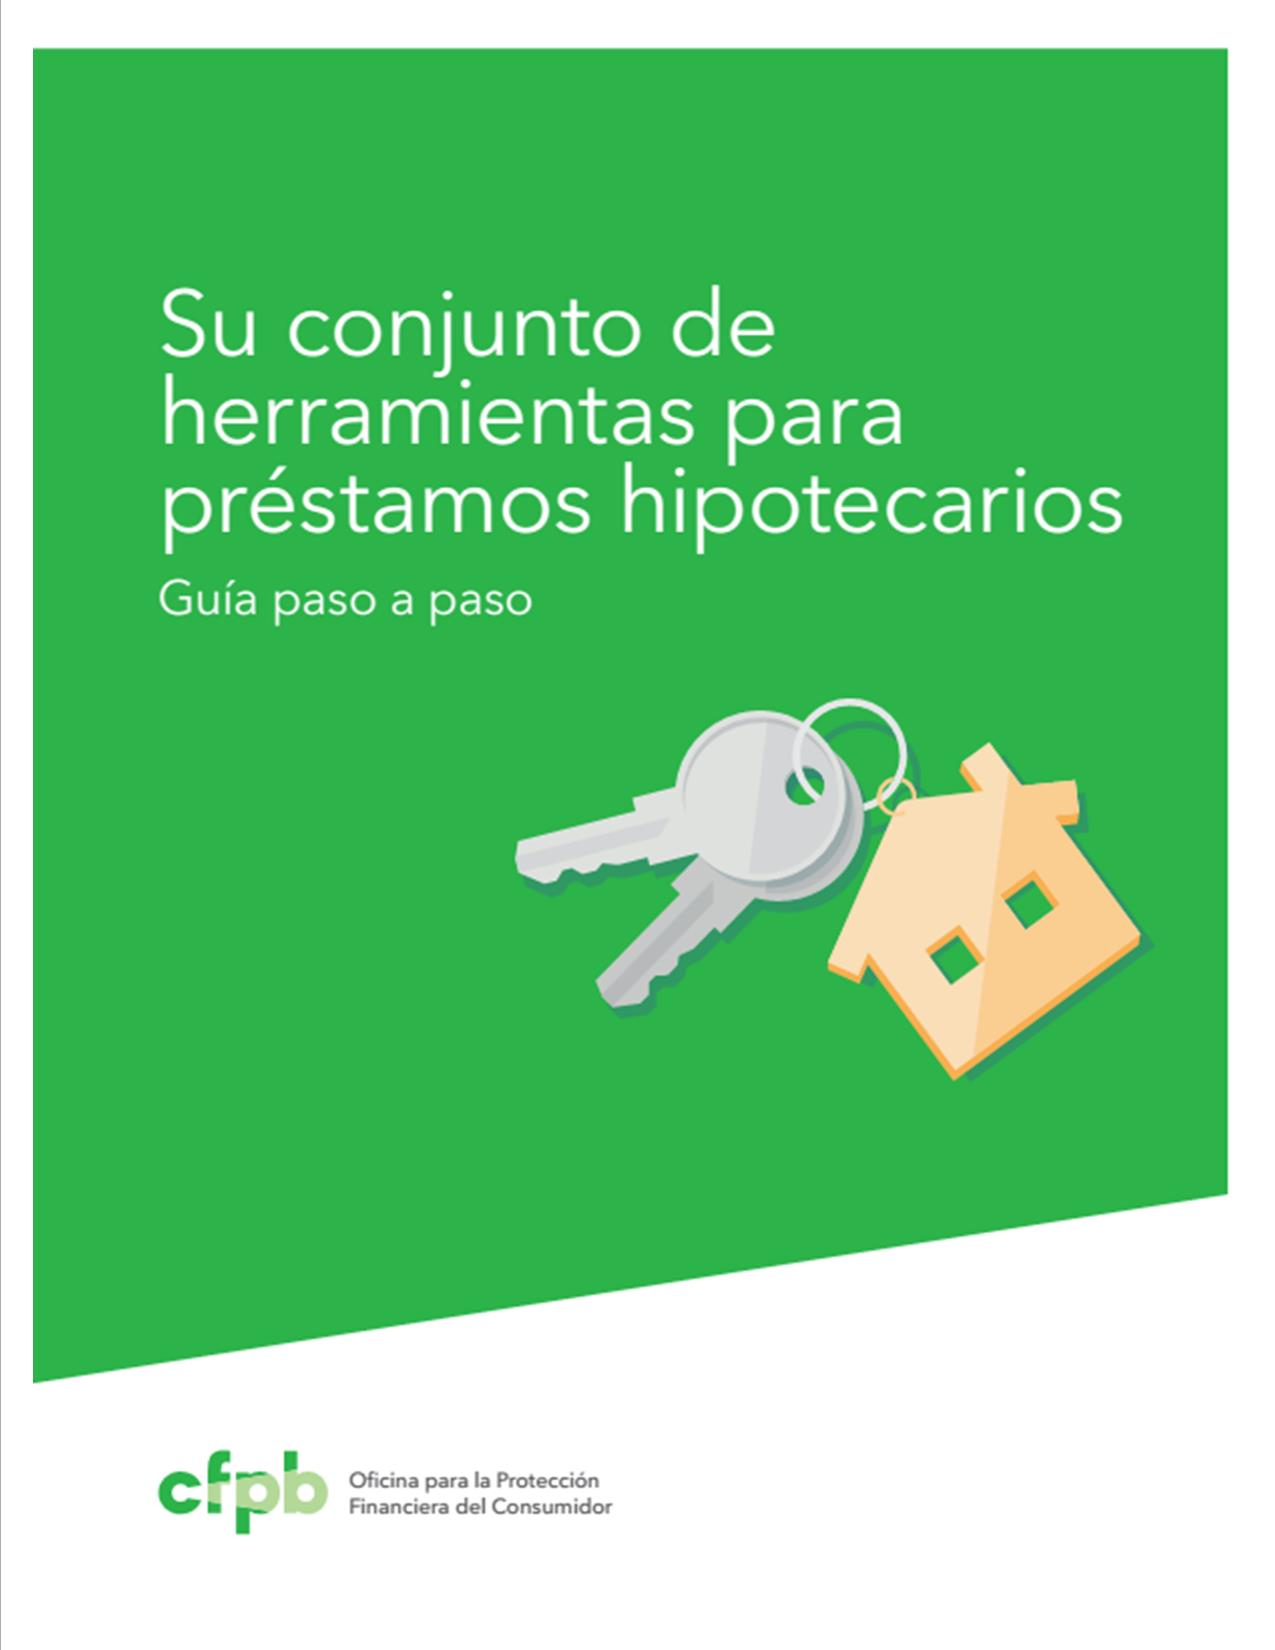 spanish home loan tool kit, home, loan, mortgage, boise, meridian